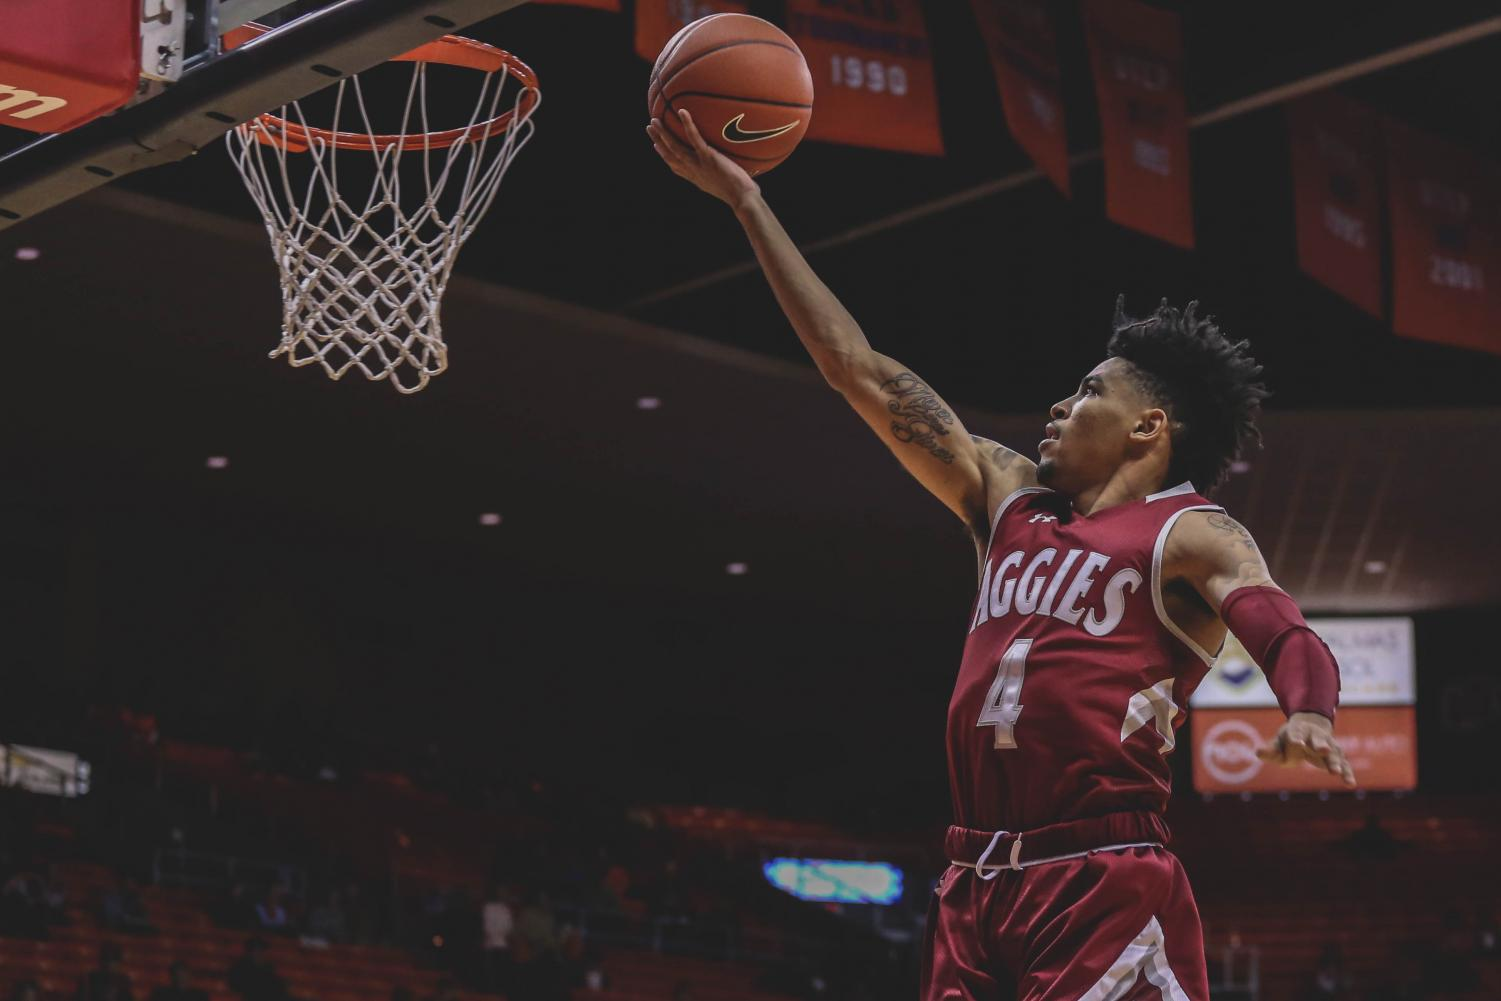 The+NMSU+Aggies+beat+the+Miners+at+the+battle+of+I-10+62-58+on+Wednesday%2C+Nov.+28+at+the+Don+Haskins+Center.+The+NMSU+Aggies+beat+the+Miners+at+the+battle+of+I-10+62-58+on+Wednesday%2C+Nov.+28+at+the+Don+Haskins+Center.+